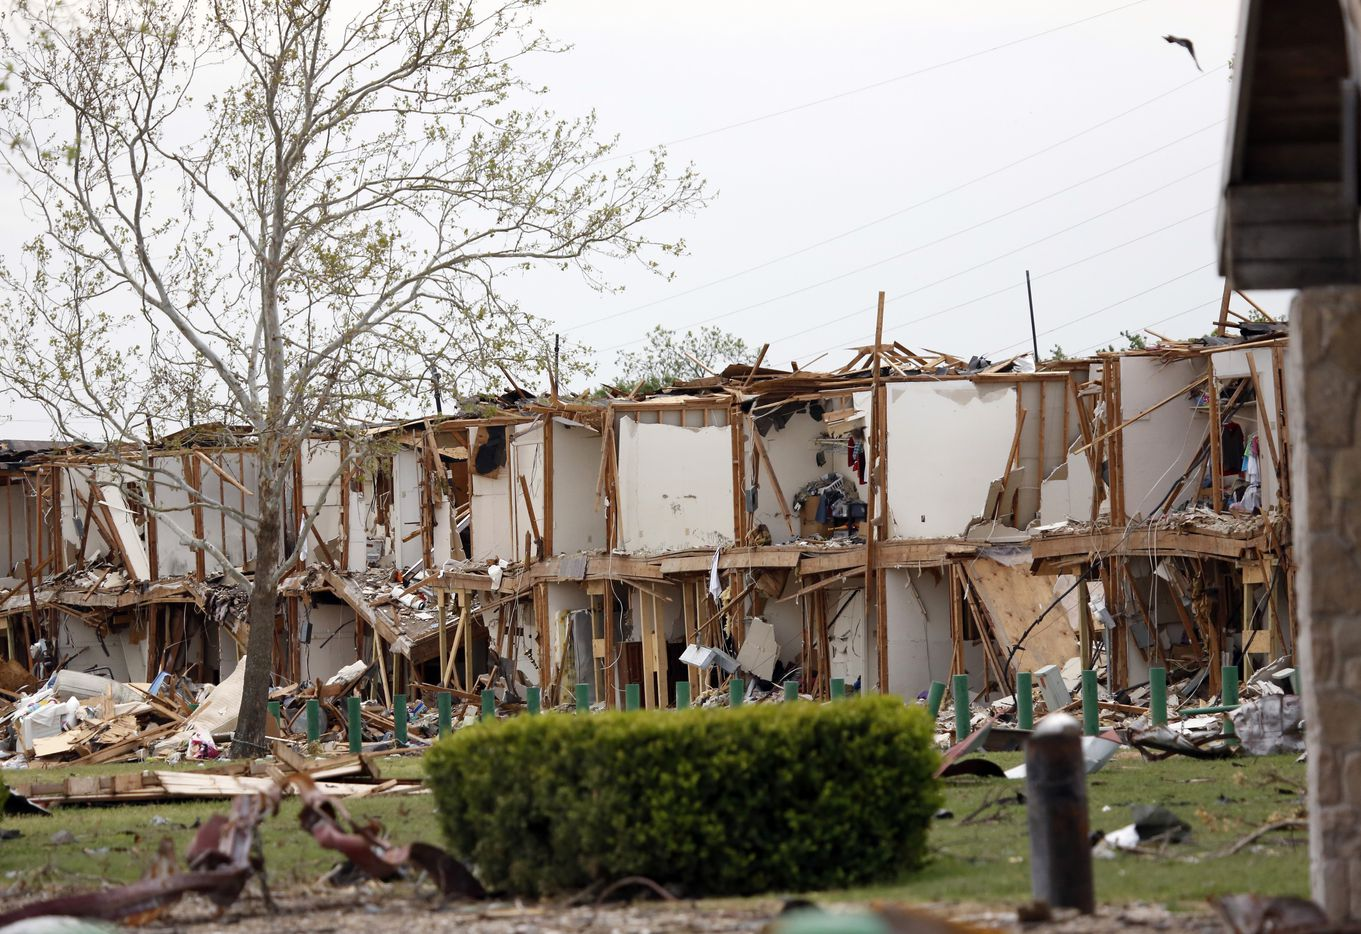 An apartment building on Reagan St. in West stood in ruins ten days after the West Fertilizer Co. explosion on April 17, 2013.